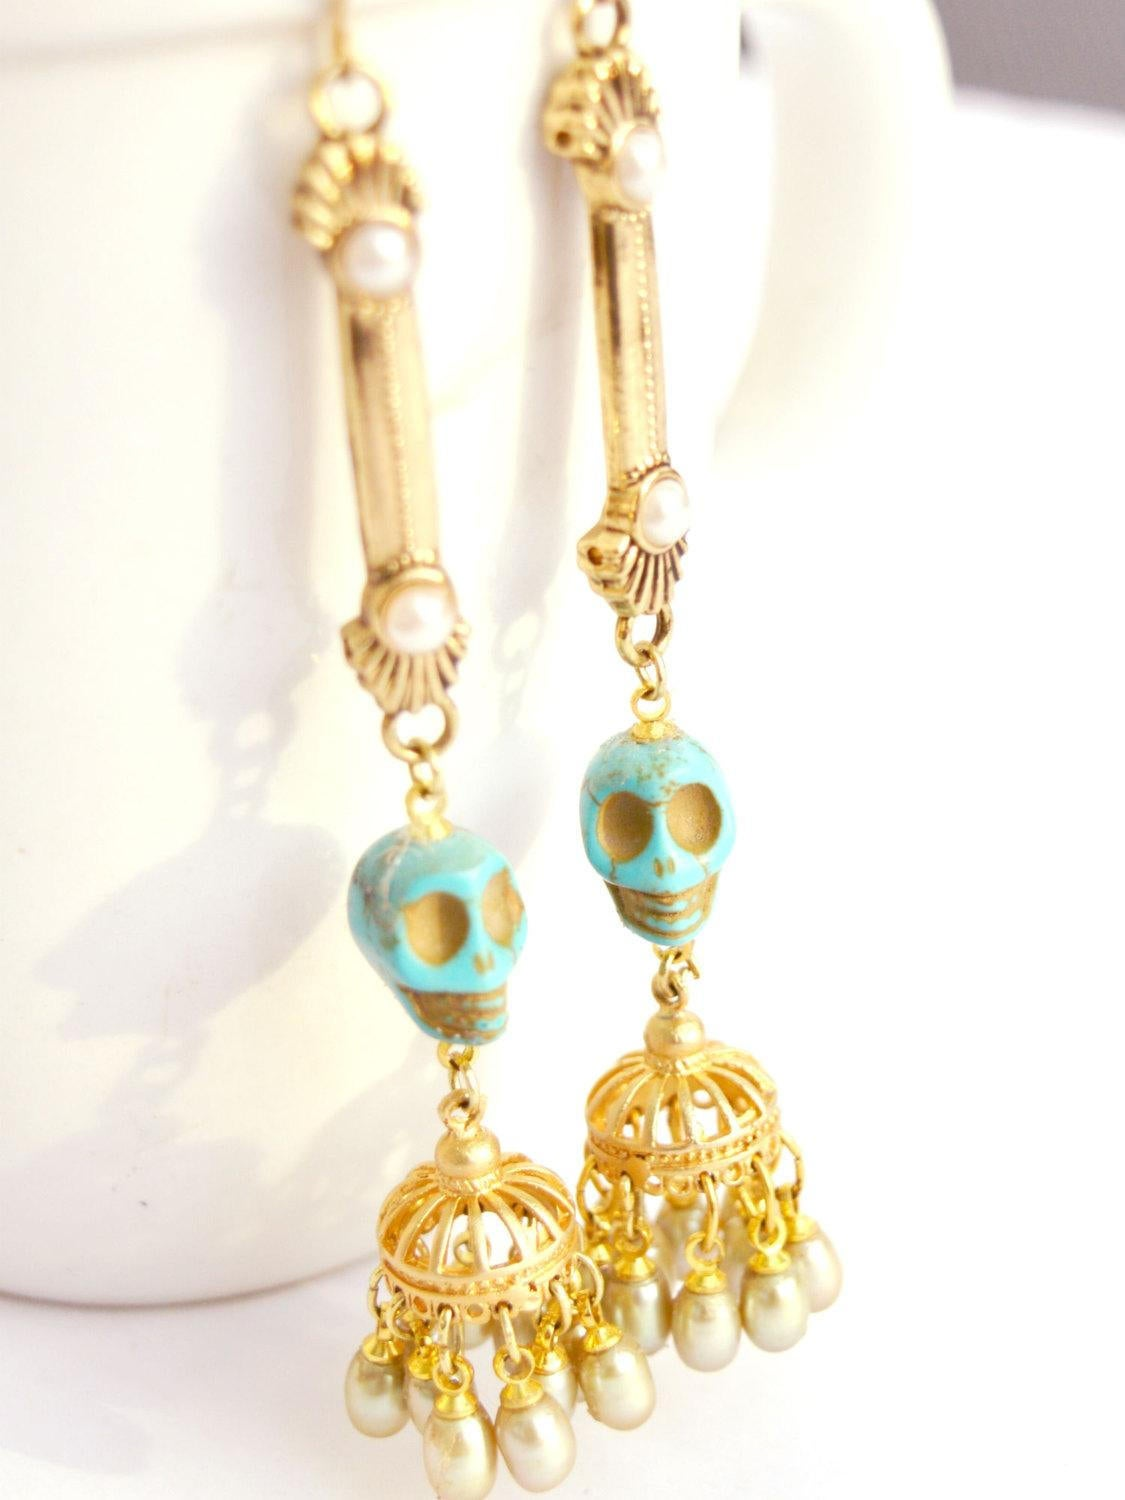 rocker bride gold earrings with turquoise skulls and freshwater pearls